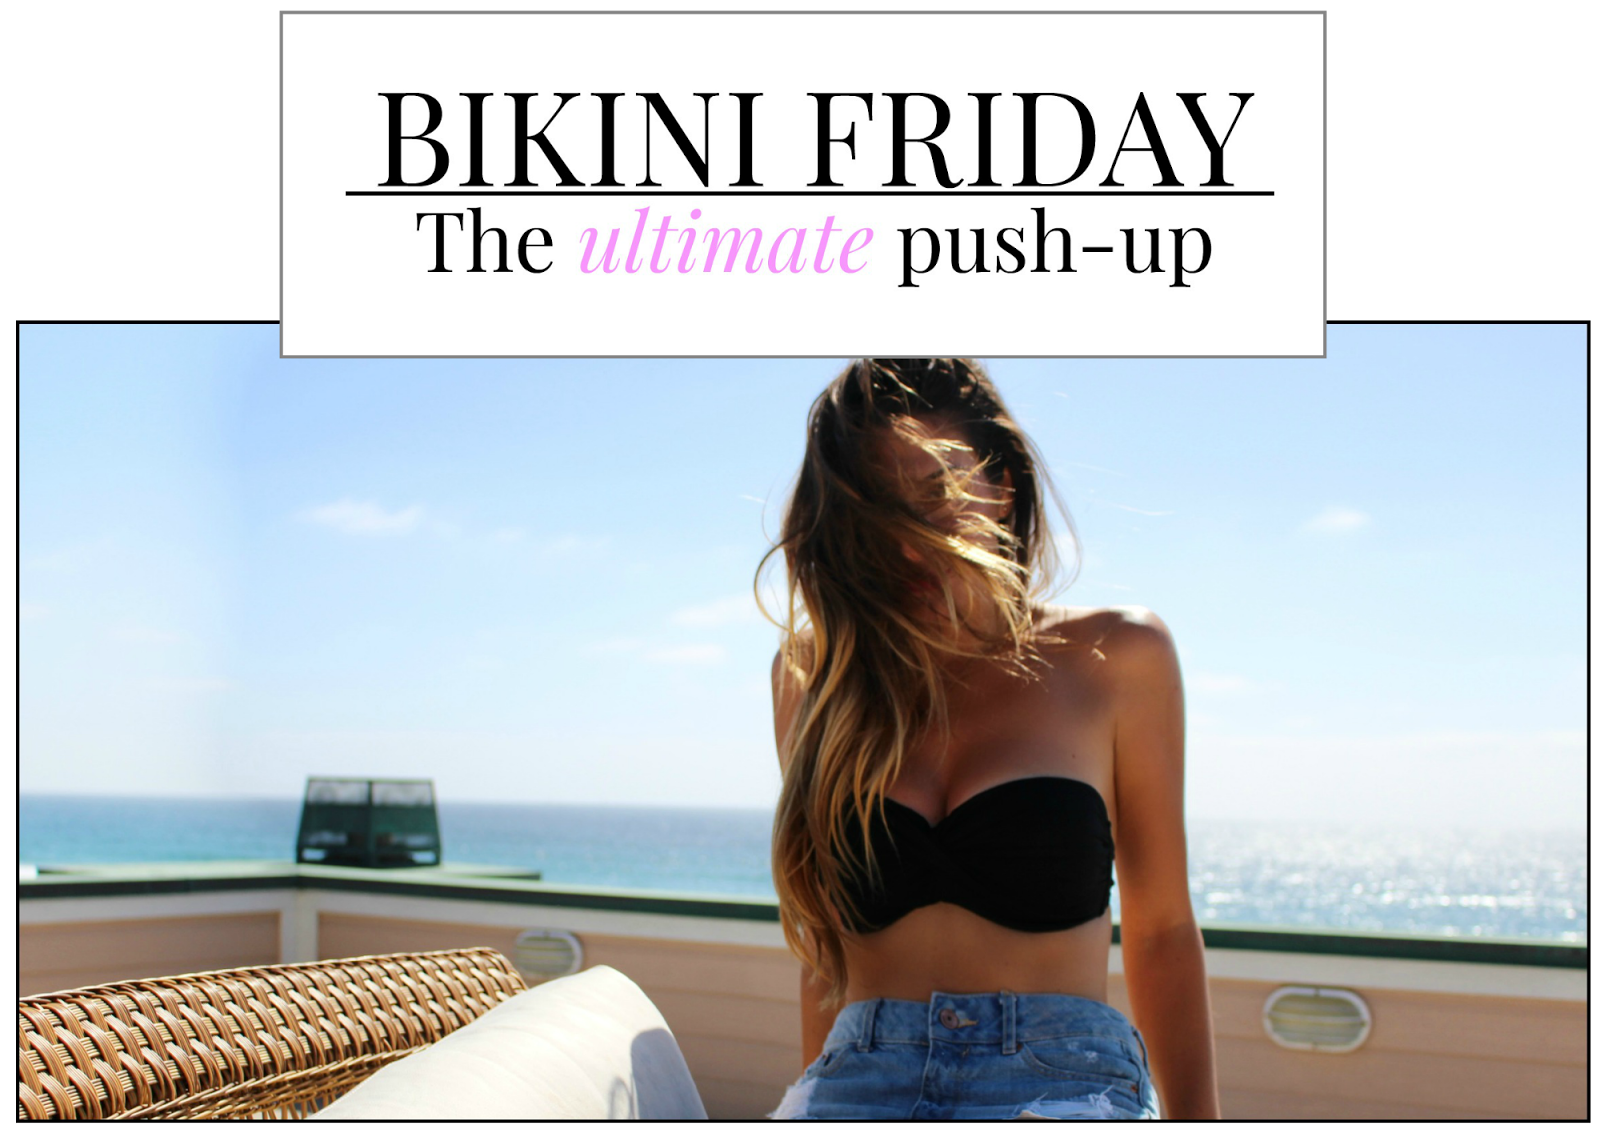 http://www.mepoopsie.com/2014/09/bikini-friday-ultimate-push-up.html